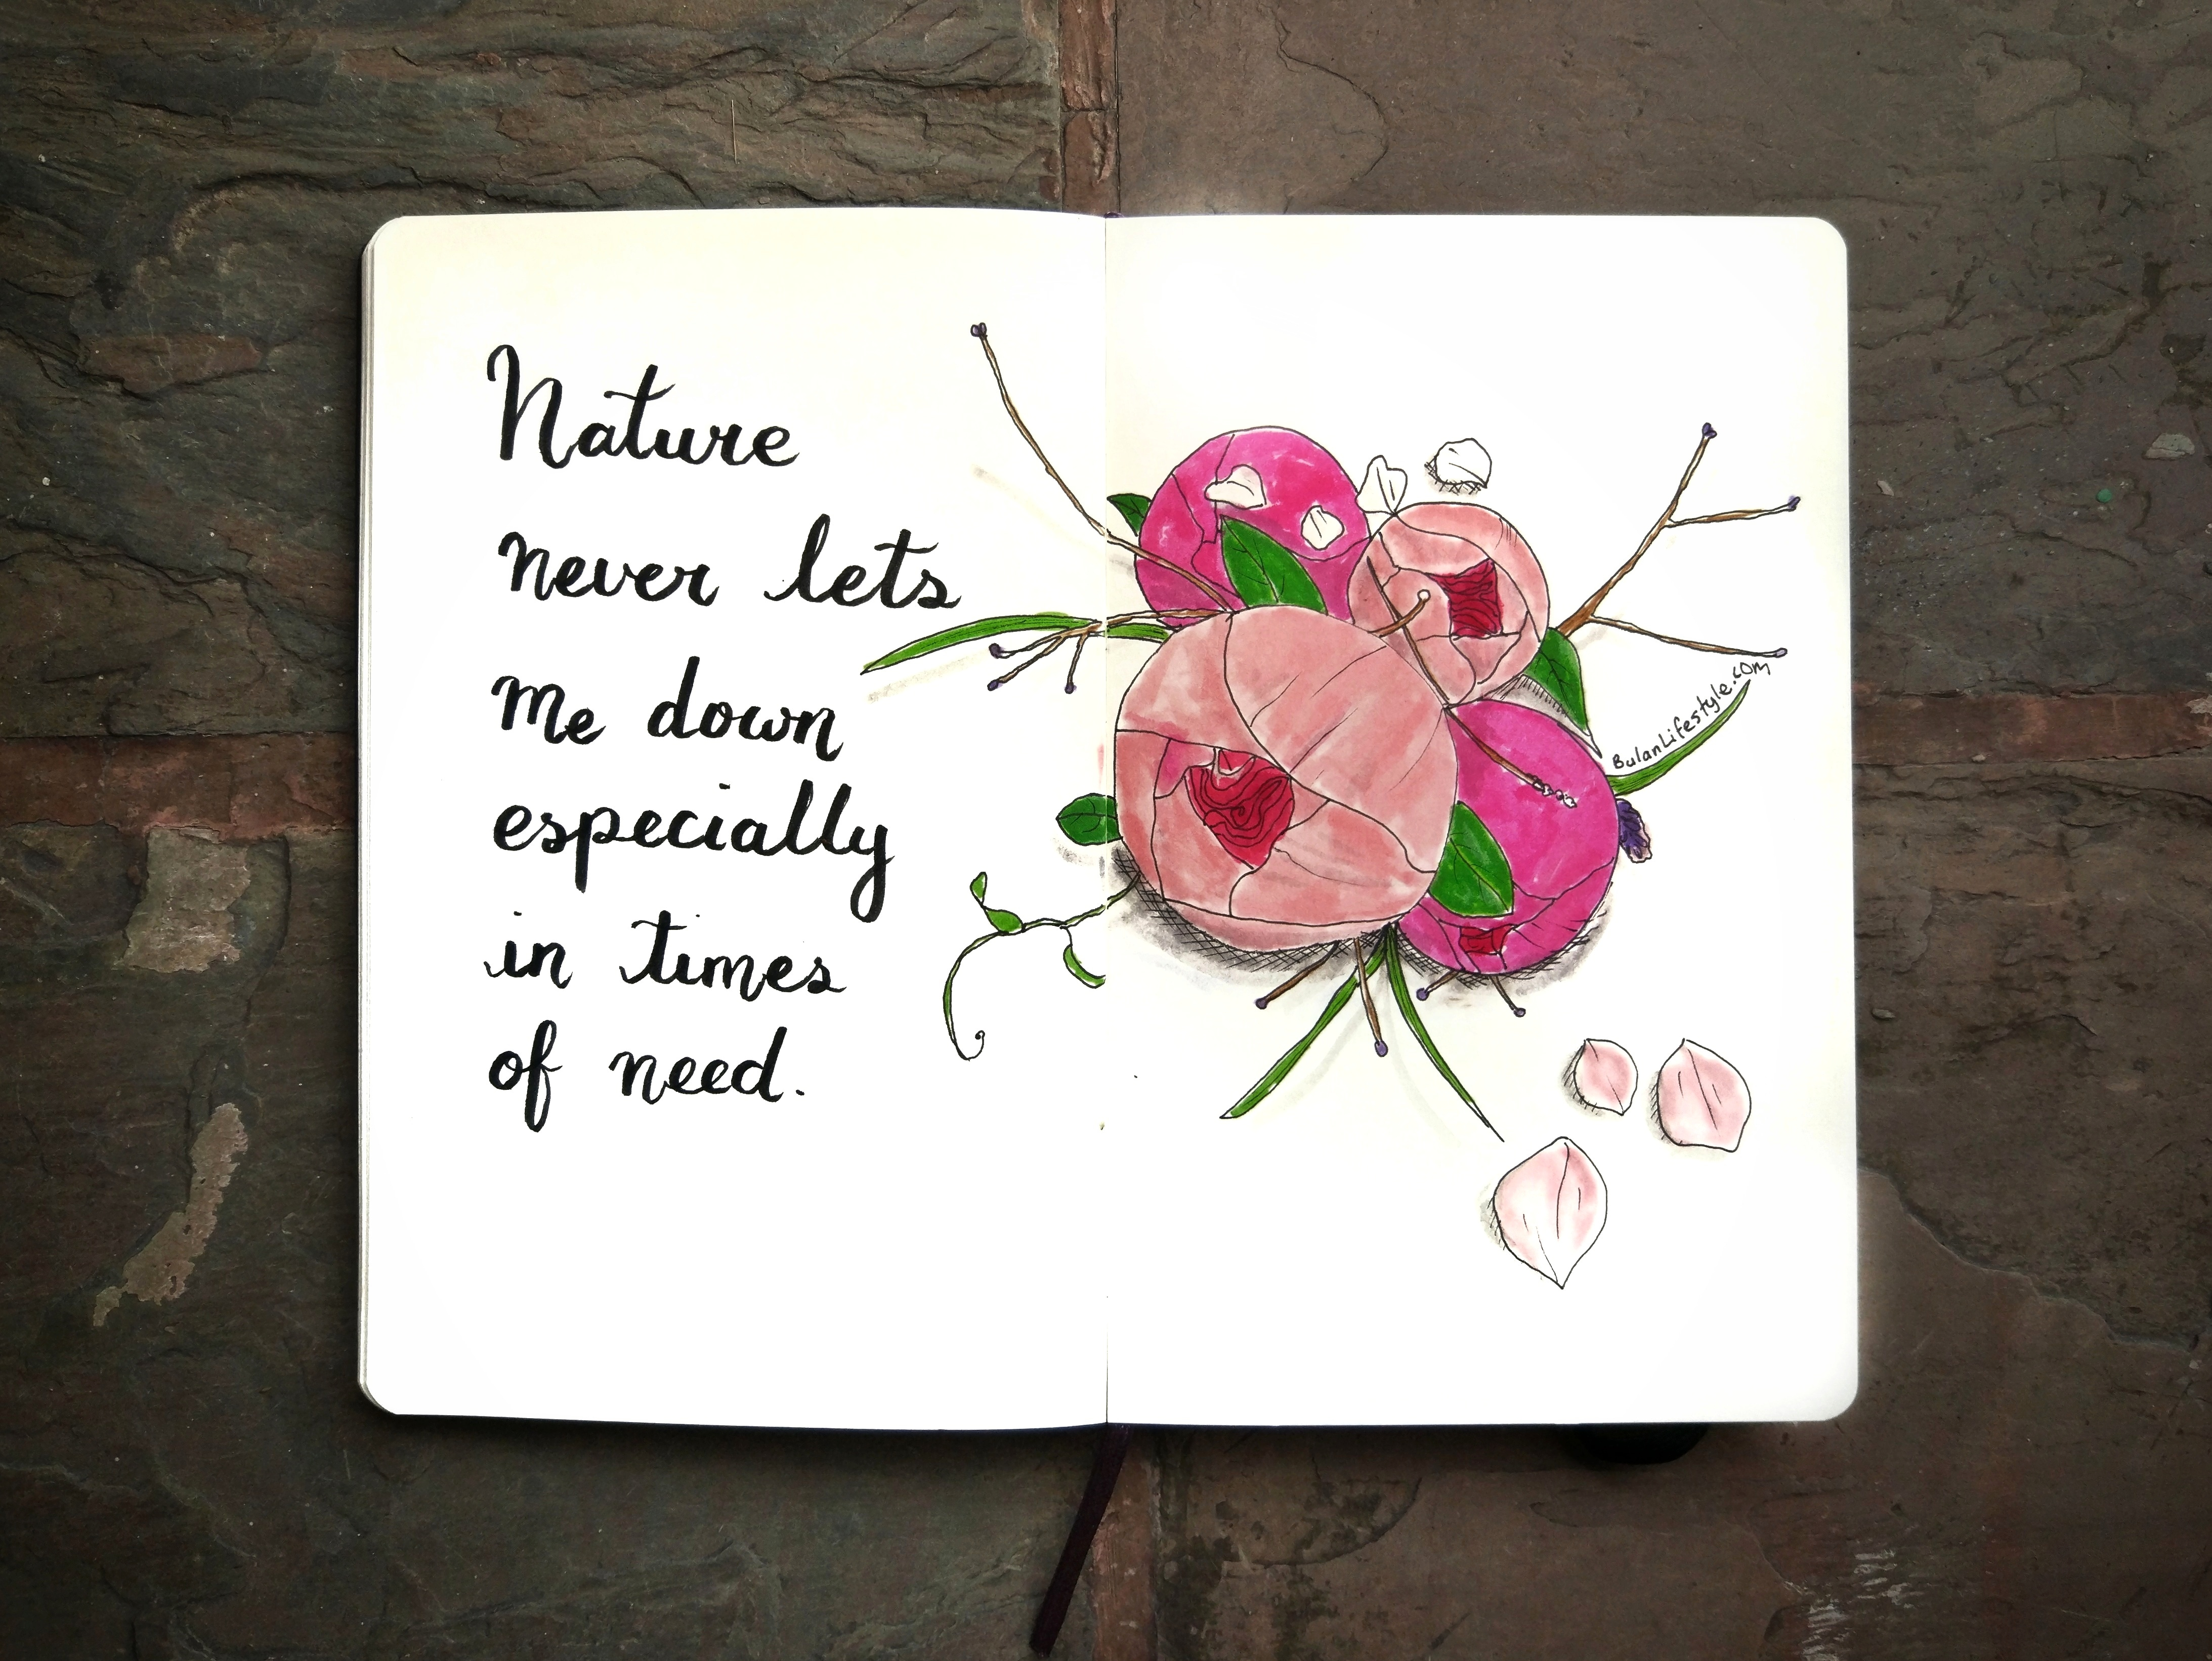 Nature never let's me down especially in times of need.